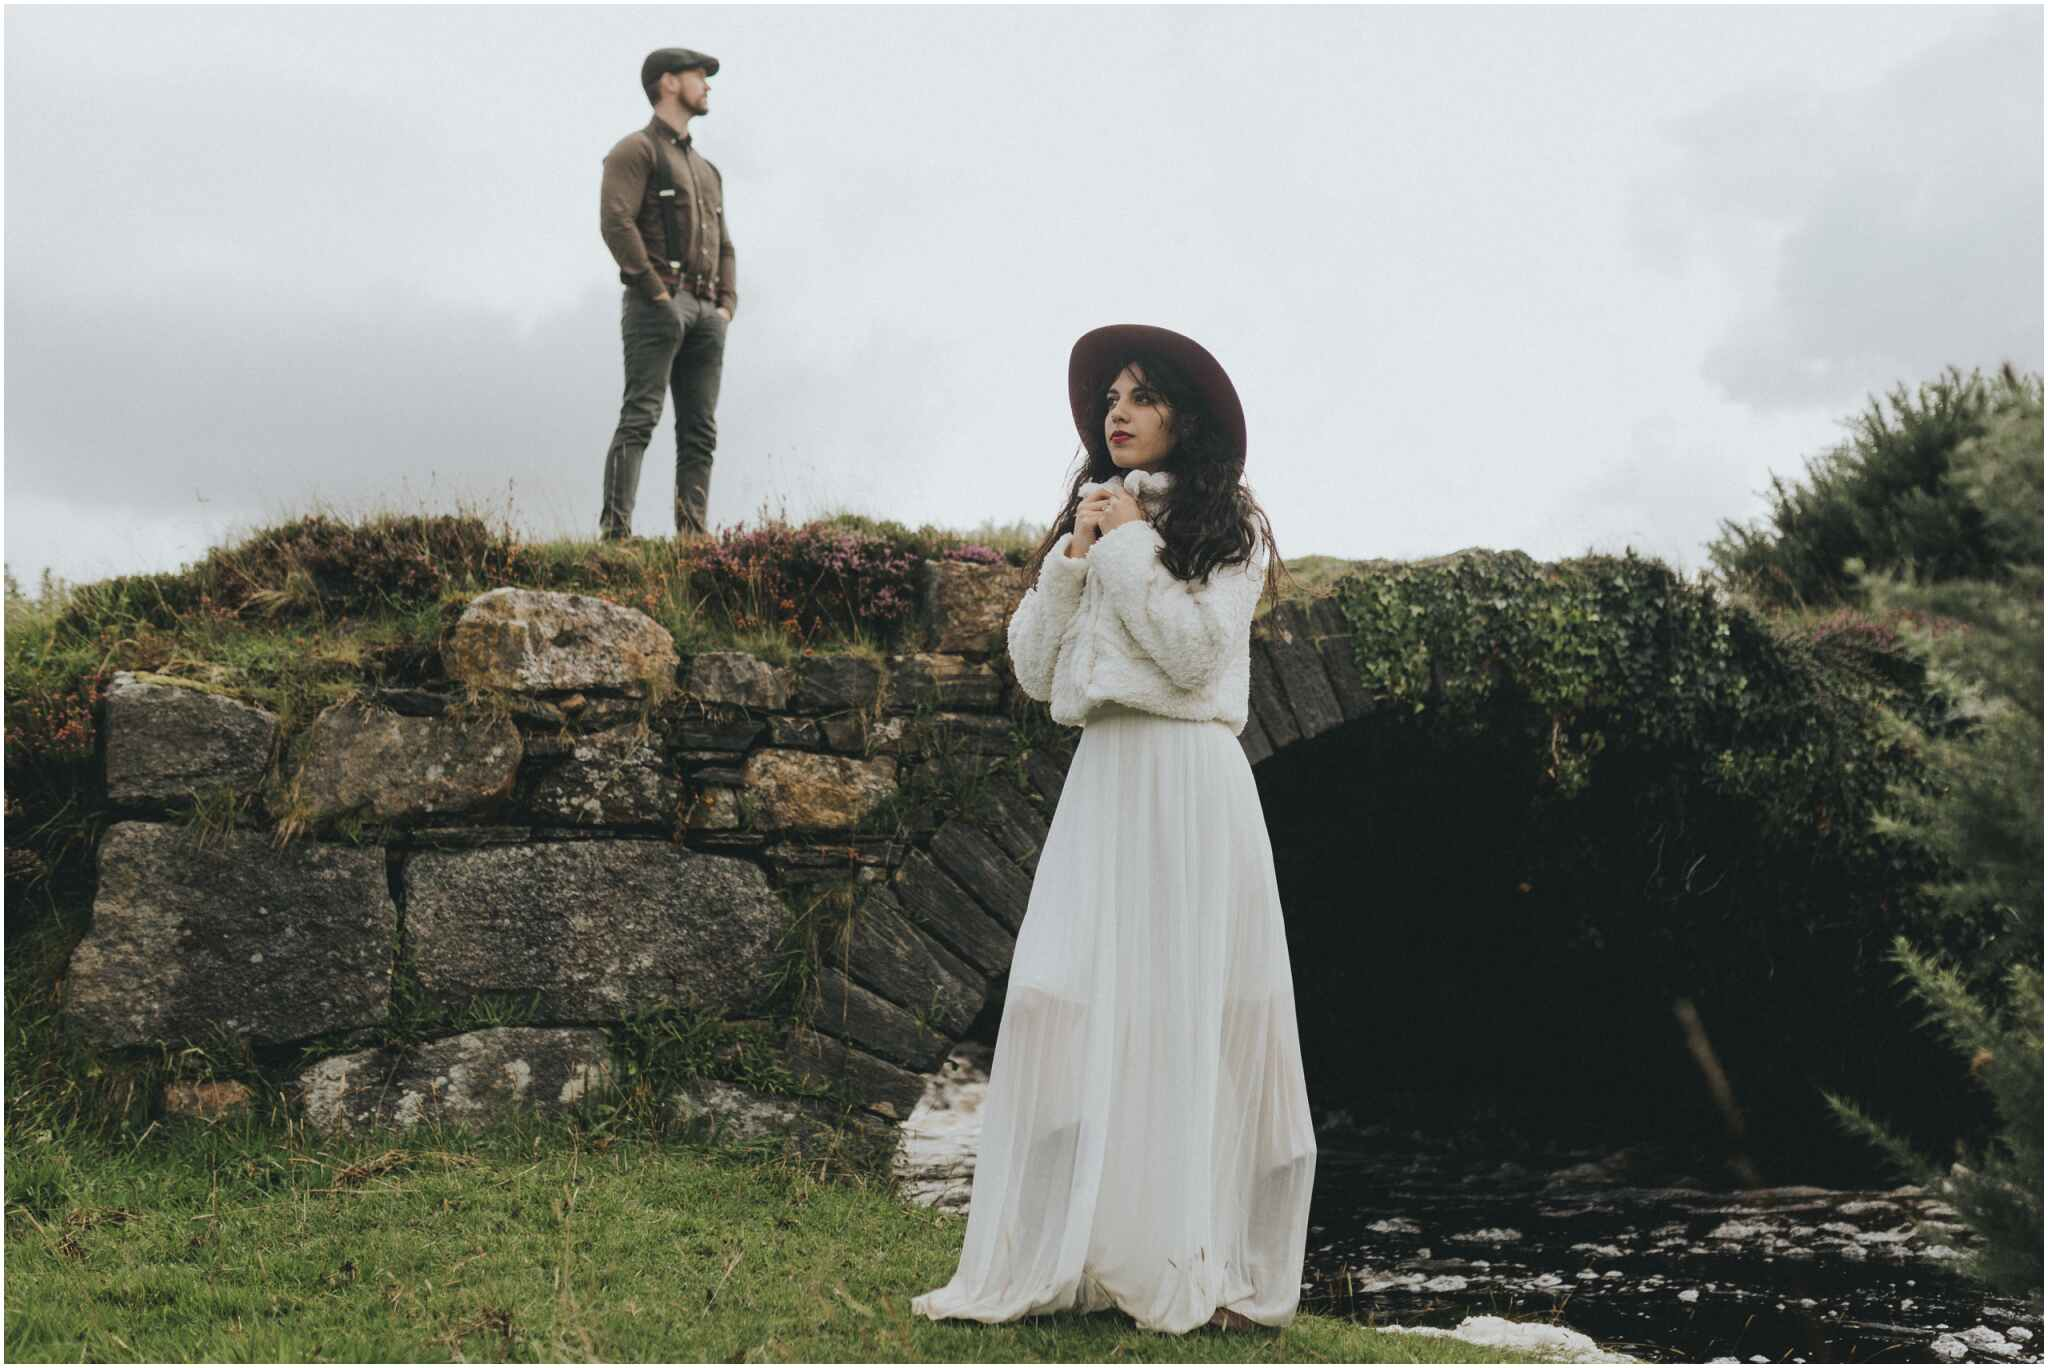 Rachel + David - Hiking Elopement in Muckish Mountain and Poisoned Glen, Donegal 23